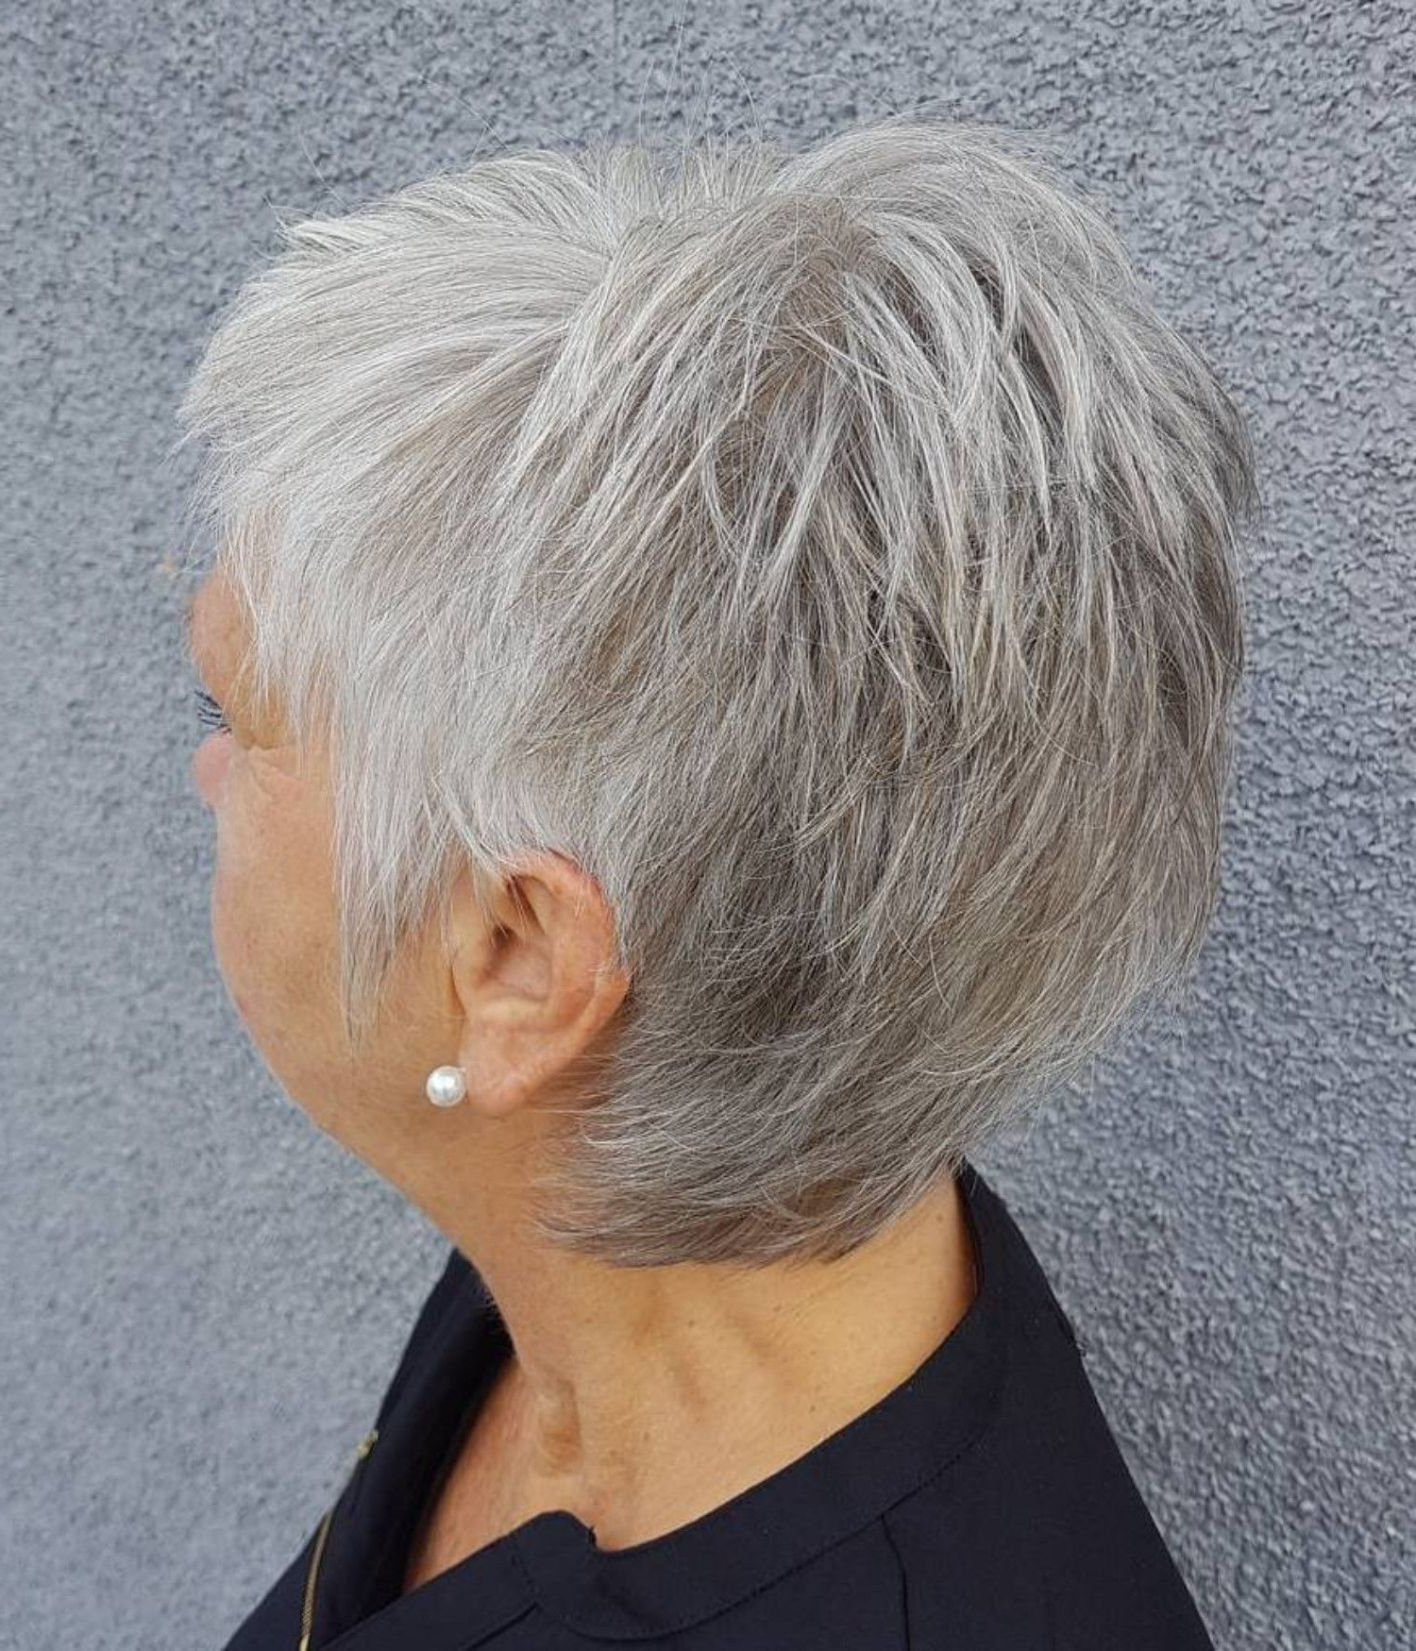 90 Classy And Simple Short Hairstyles For Women Over 50 In 2018 Regarding Long Curly Salt And Pepper Pixie Hairstyles (Gallery 14 of 20)